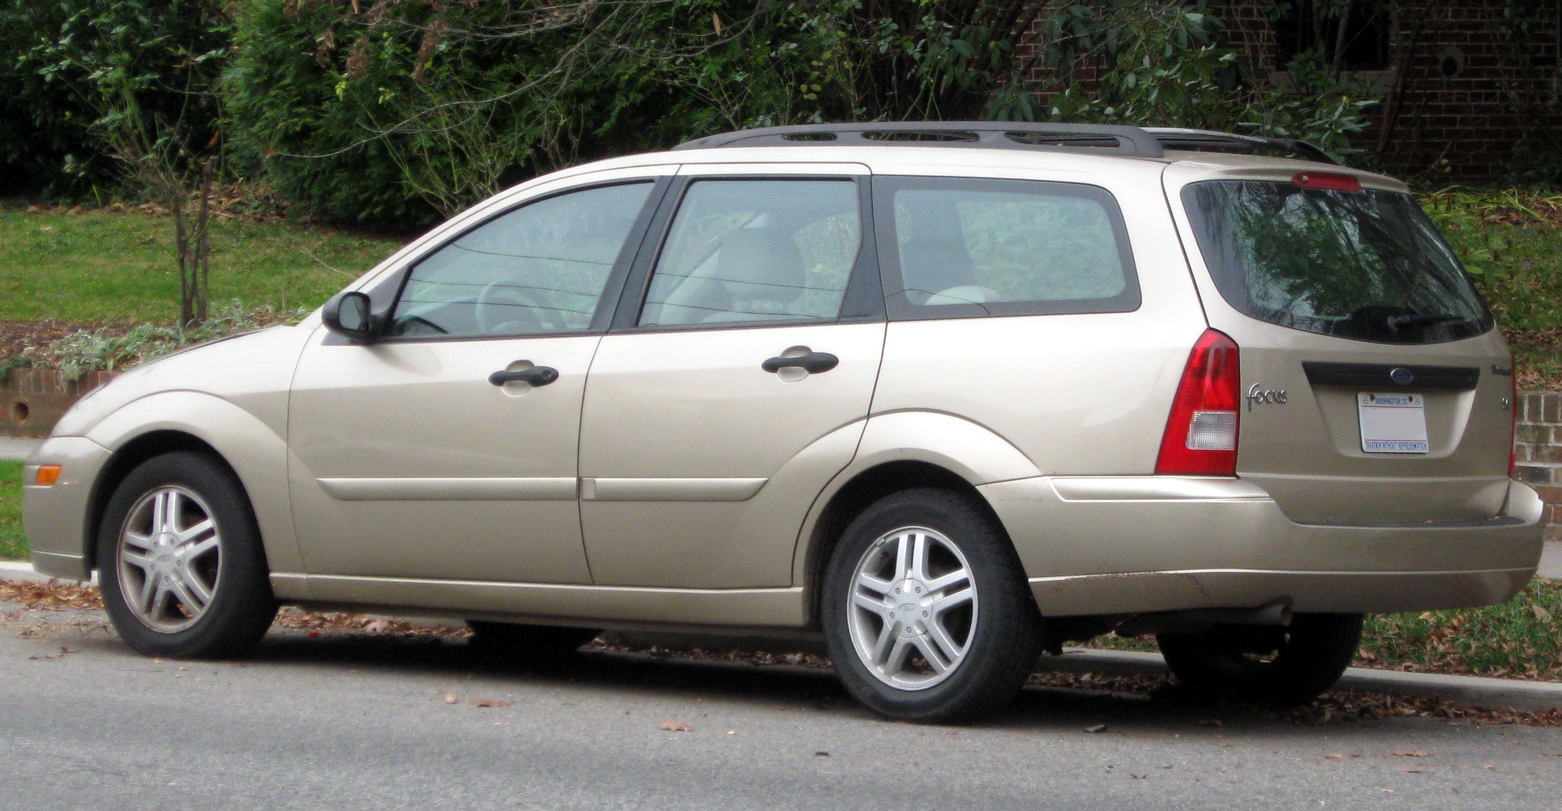 hight resolution of ford focus hatch 2000 images